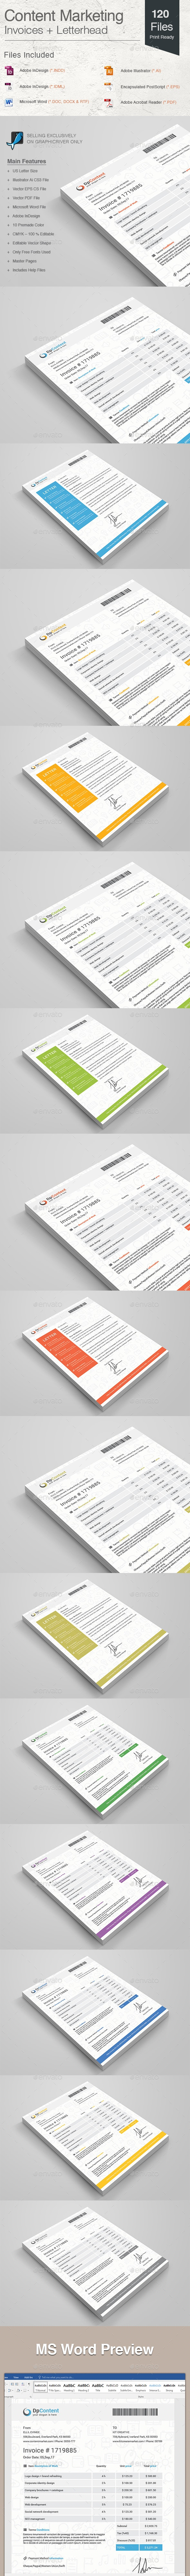 Content Marketing Invoices + Letterhead - Proposals & Invoices Stationery